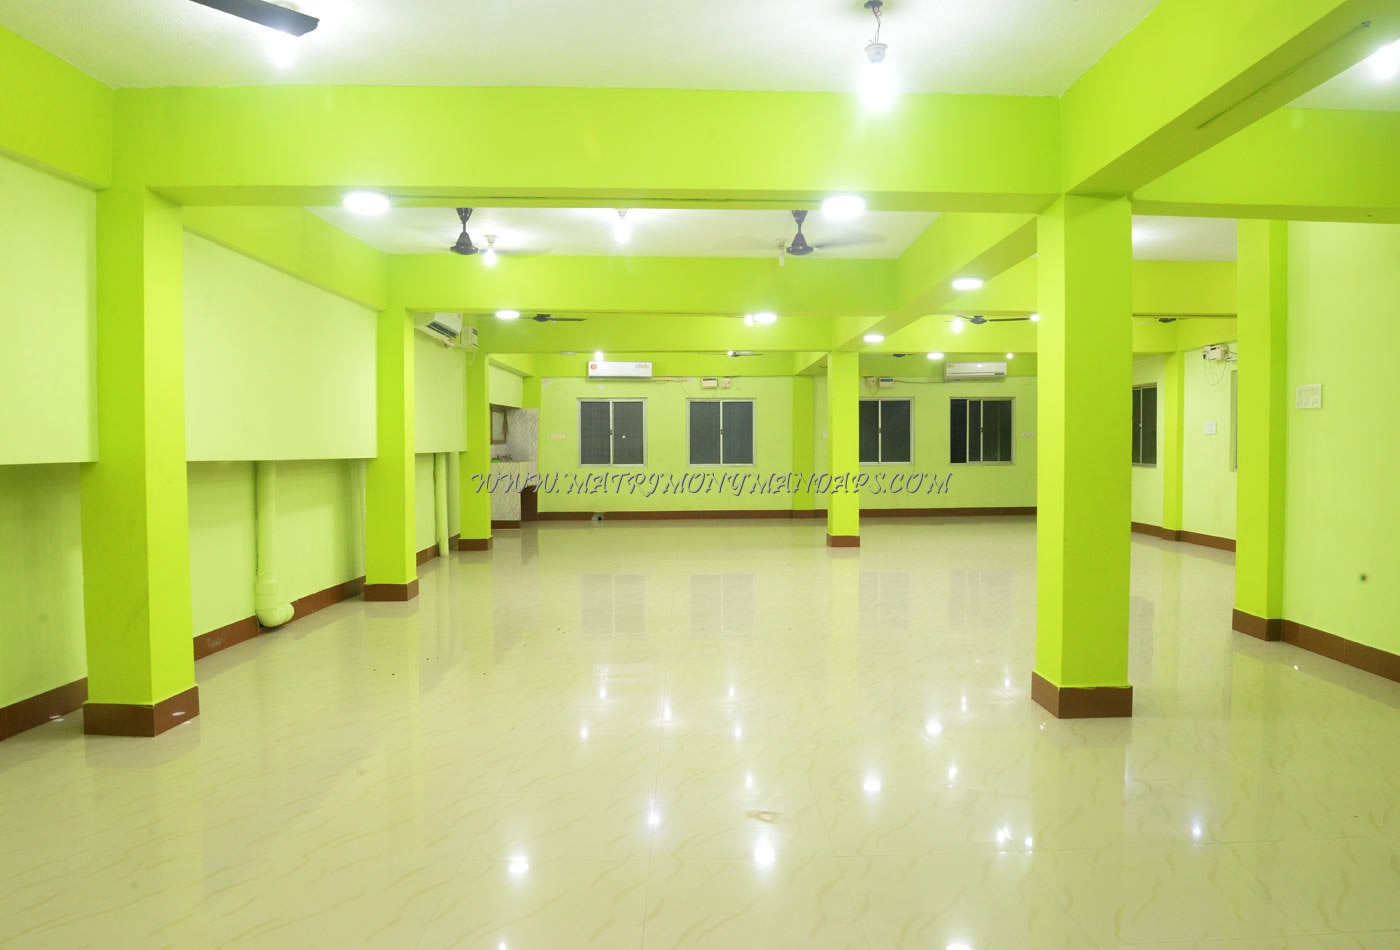 Find the availability of the Aruna Hall (A/C) in RA Puram, Chennai and avail special offers